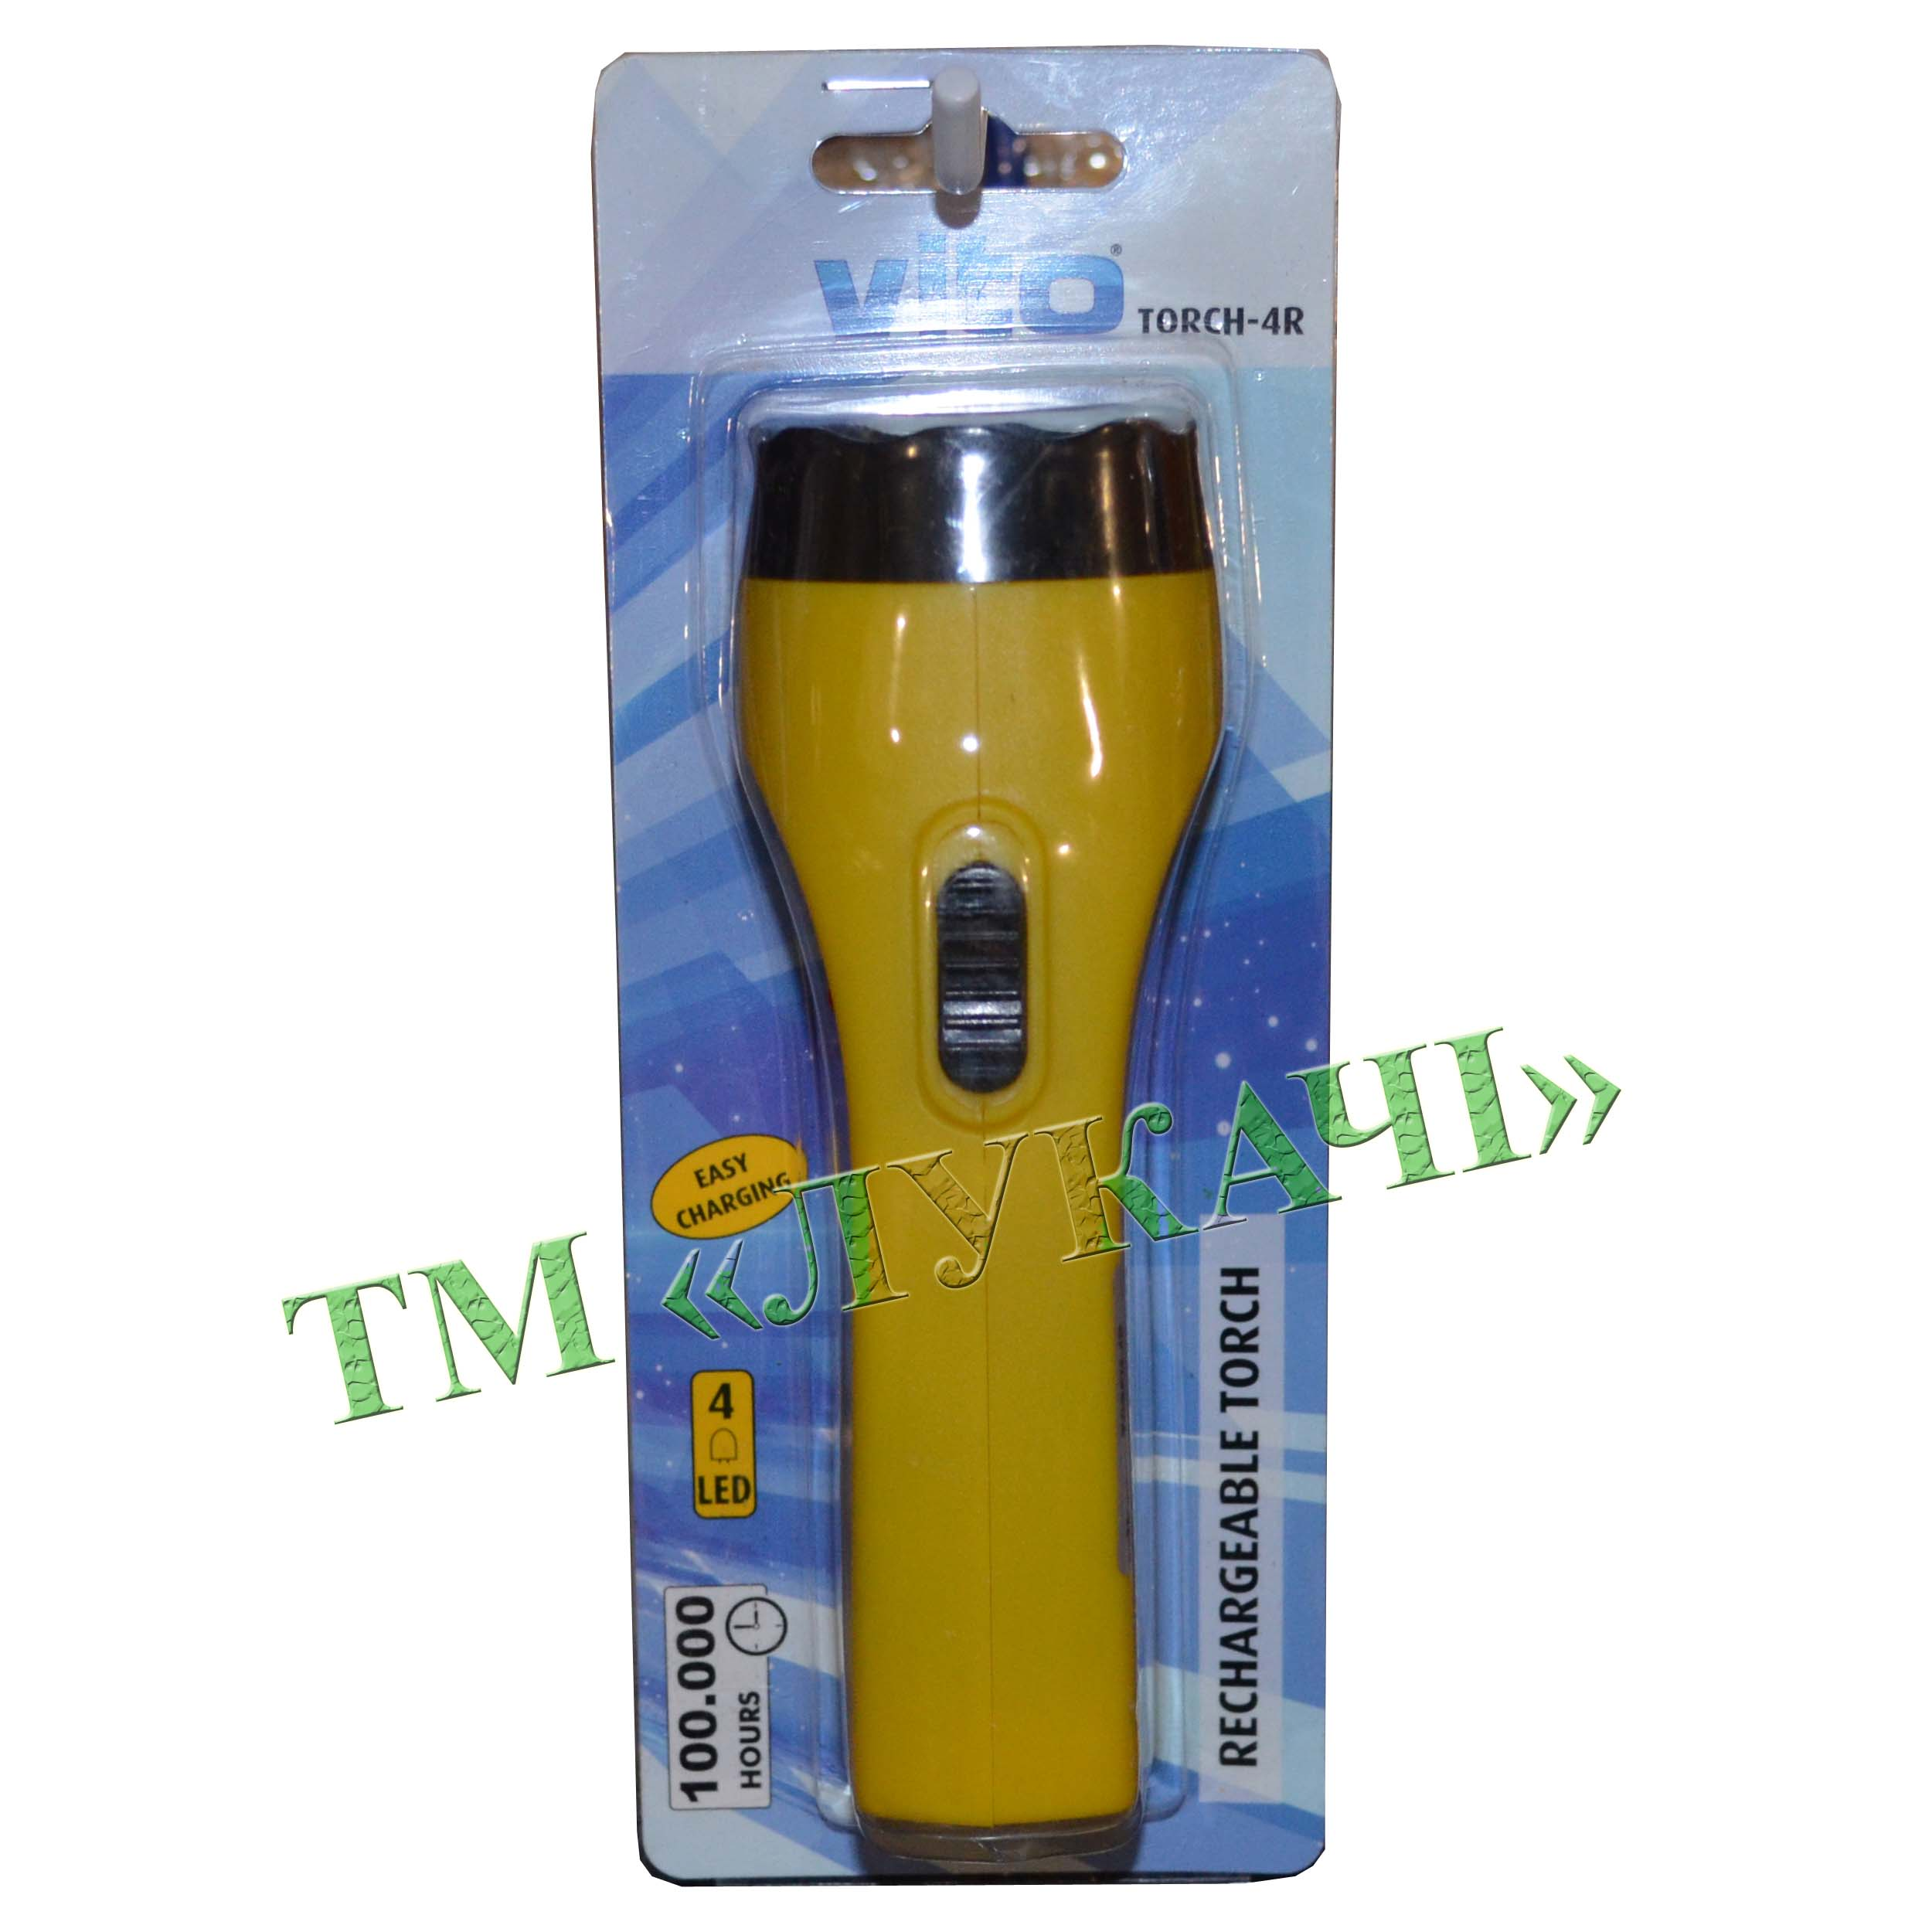 Фонар  VITO Torch-4R 4 PowerLed 4V 400mAh 1-4год.5000250